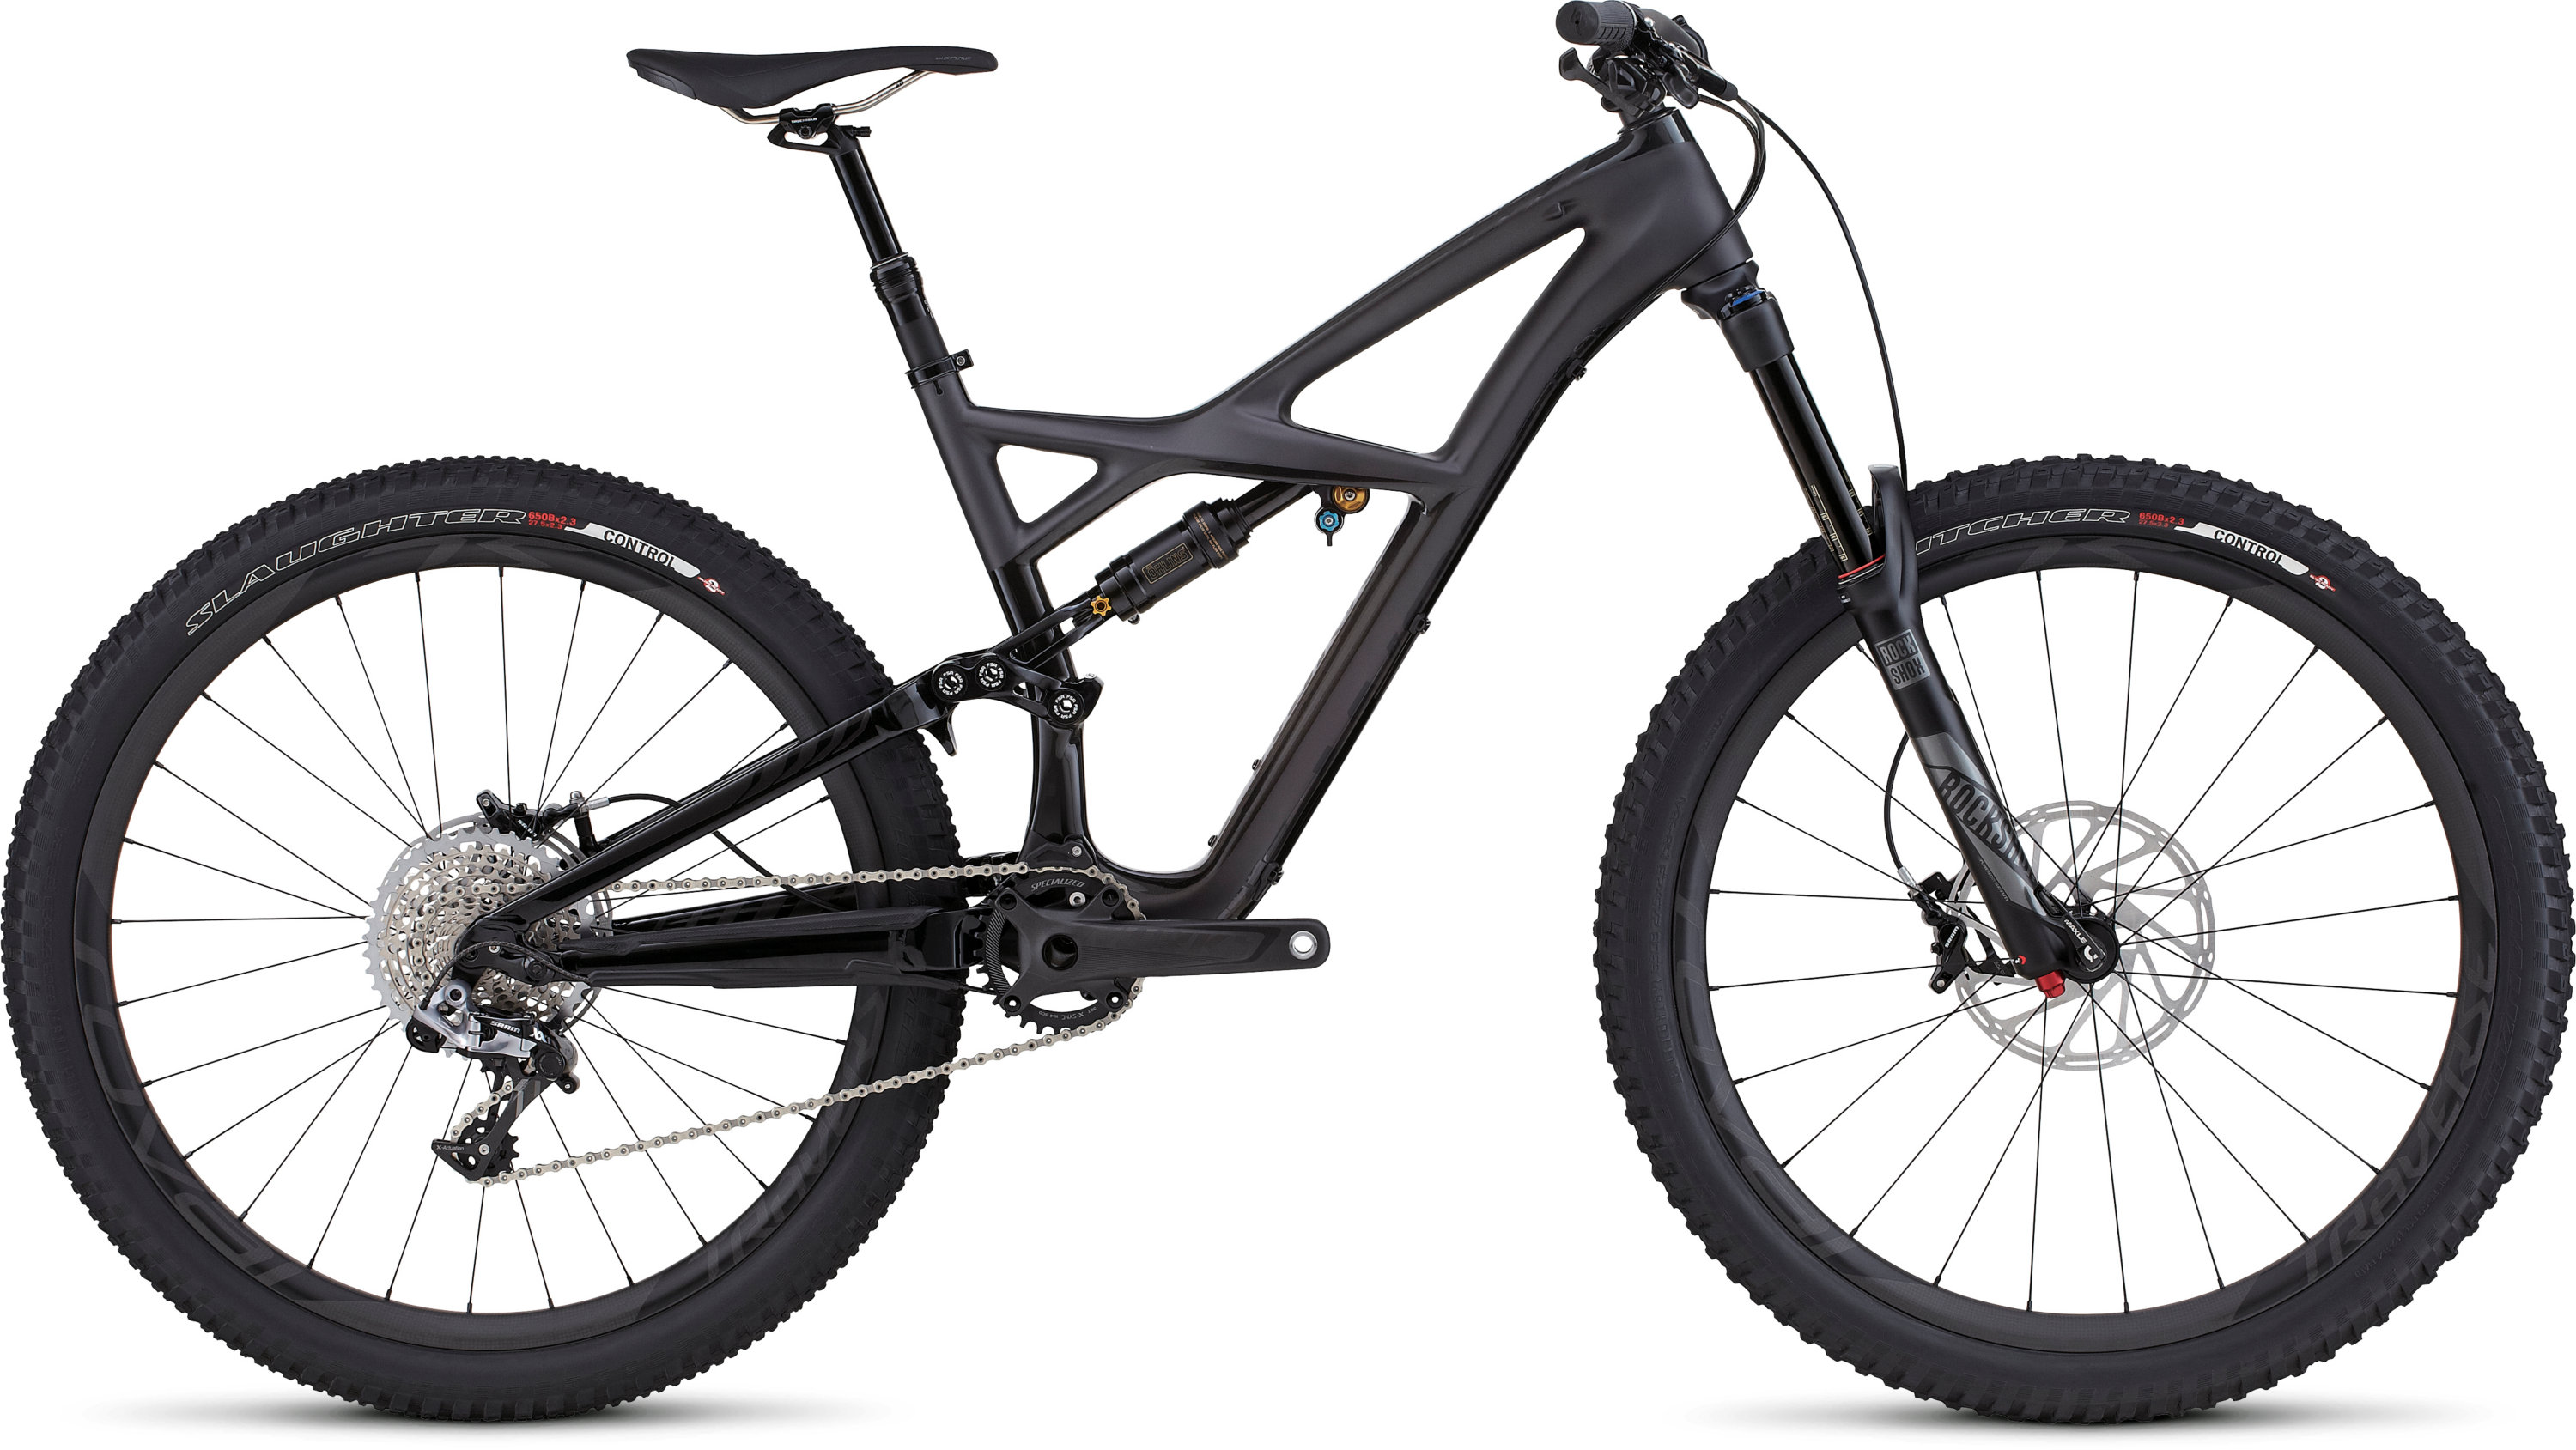 SPECIALIZED SW ENDURO FSR CARBON 650B WRMCHAR/CARB/BLK S - Bikedreams & Dustbikes